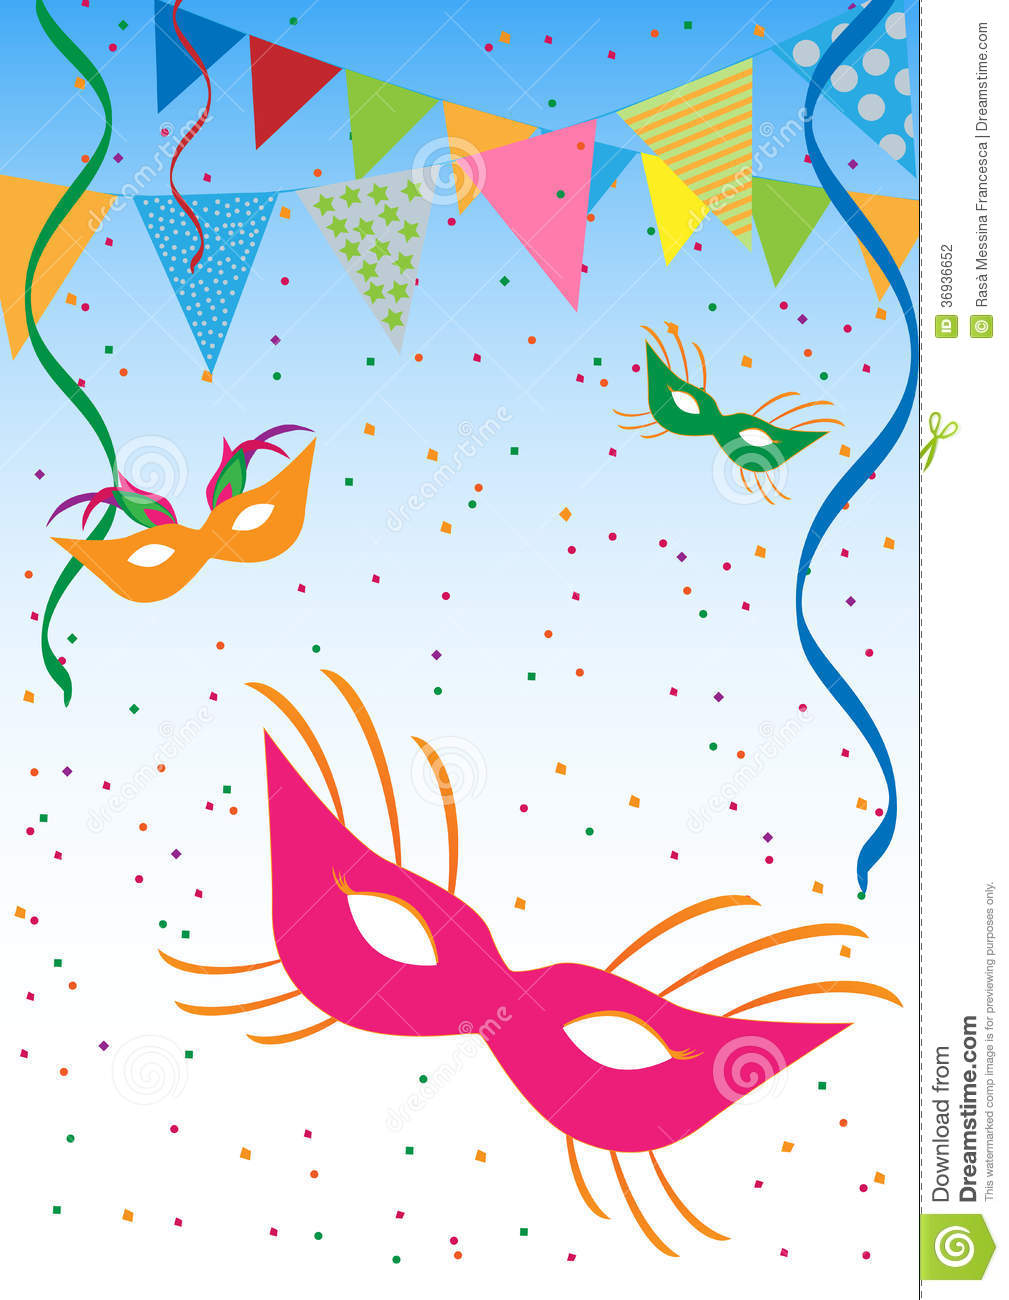 Carnival or mardi gras background with masks, confetti, ribbons and ...